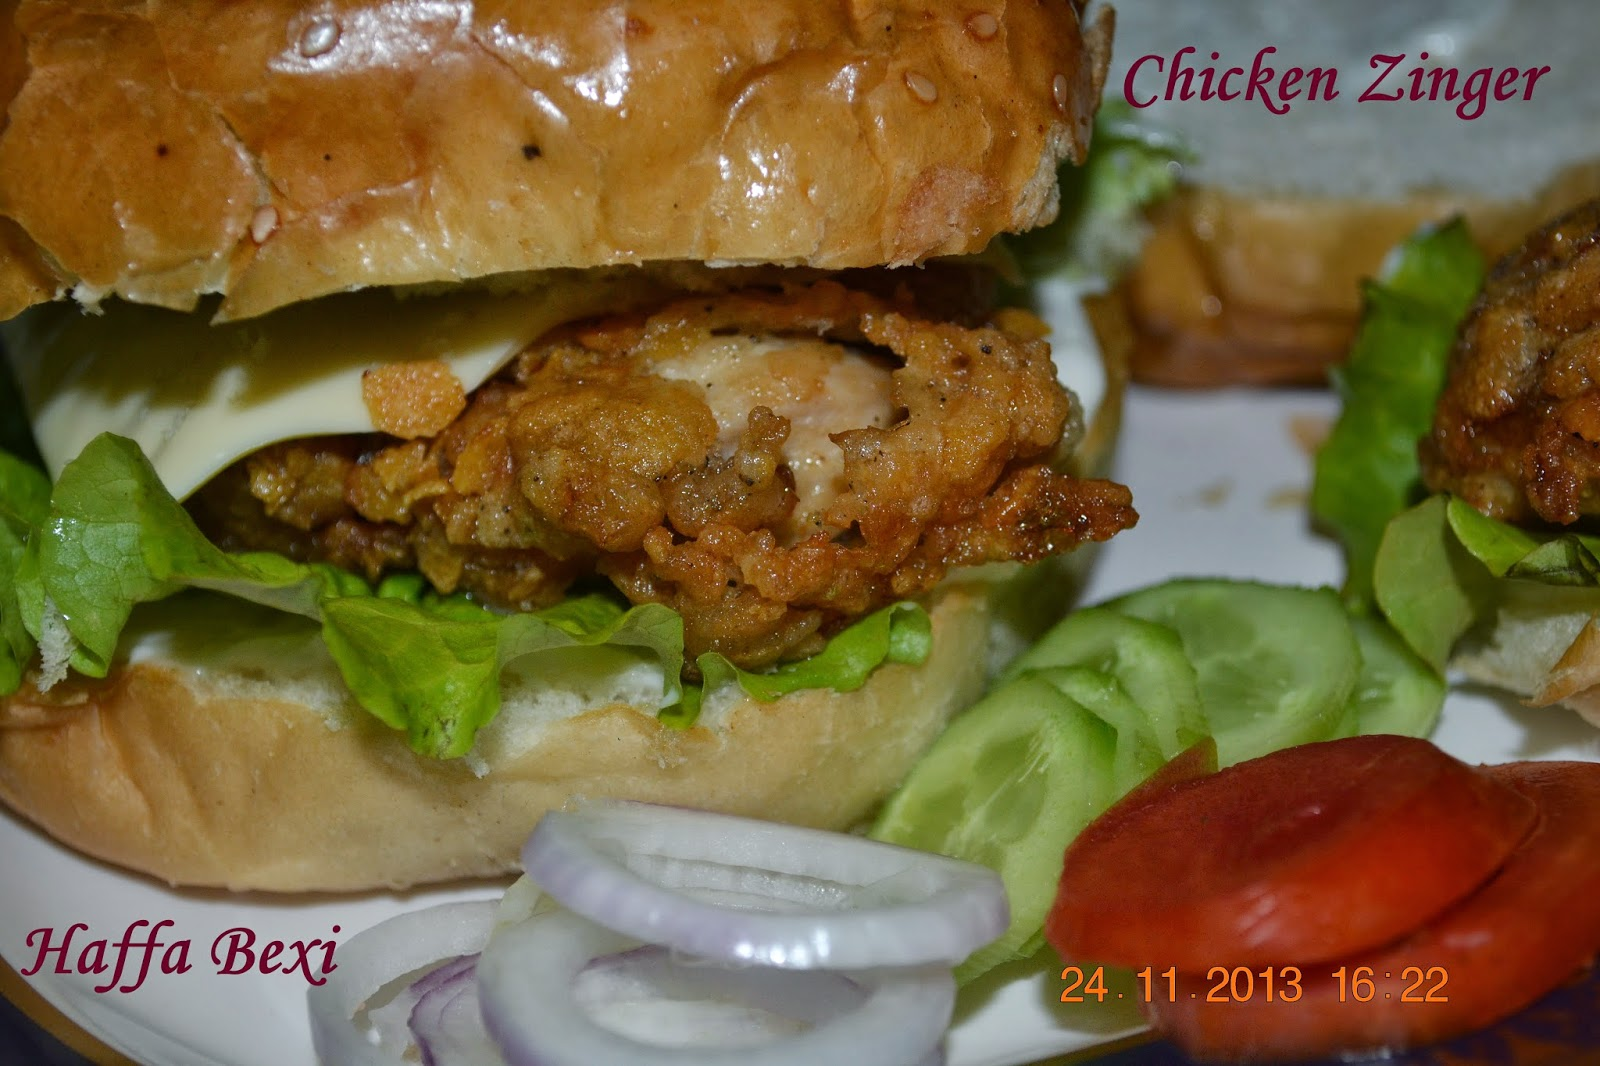 Chicken, Burgers & Sandwiches, easy burgers, hamburger, kfc zinger, chicken zinger burger kfc style, chicken burger recipes, baked chicken breasts, ways to cook chicken breast, chicken dishes,